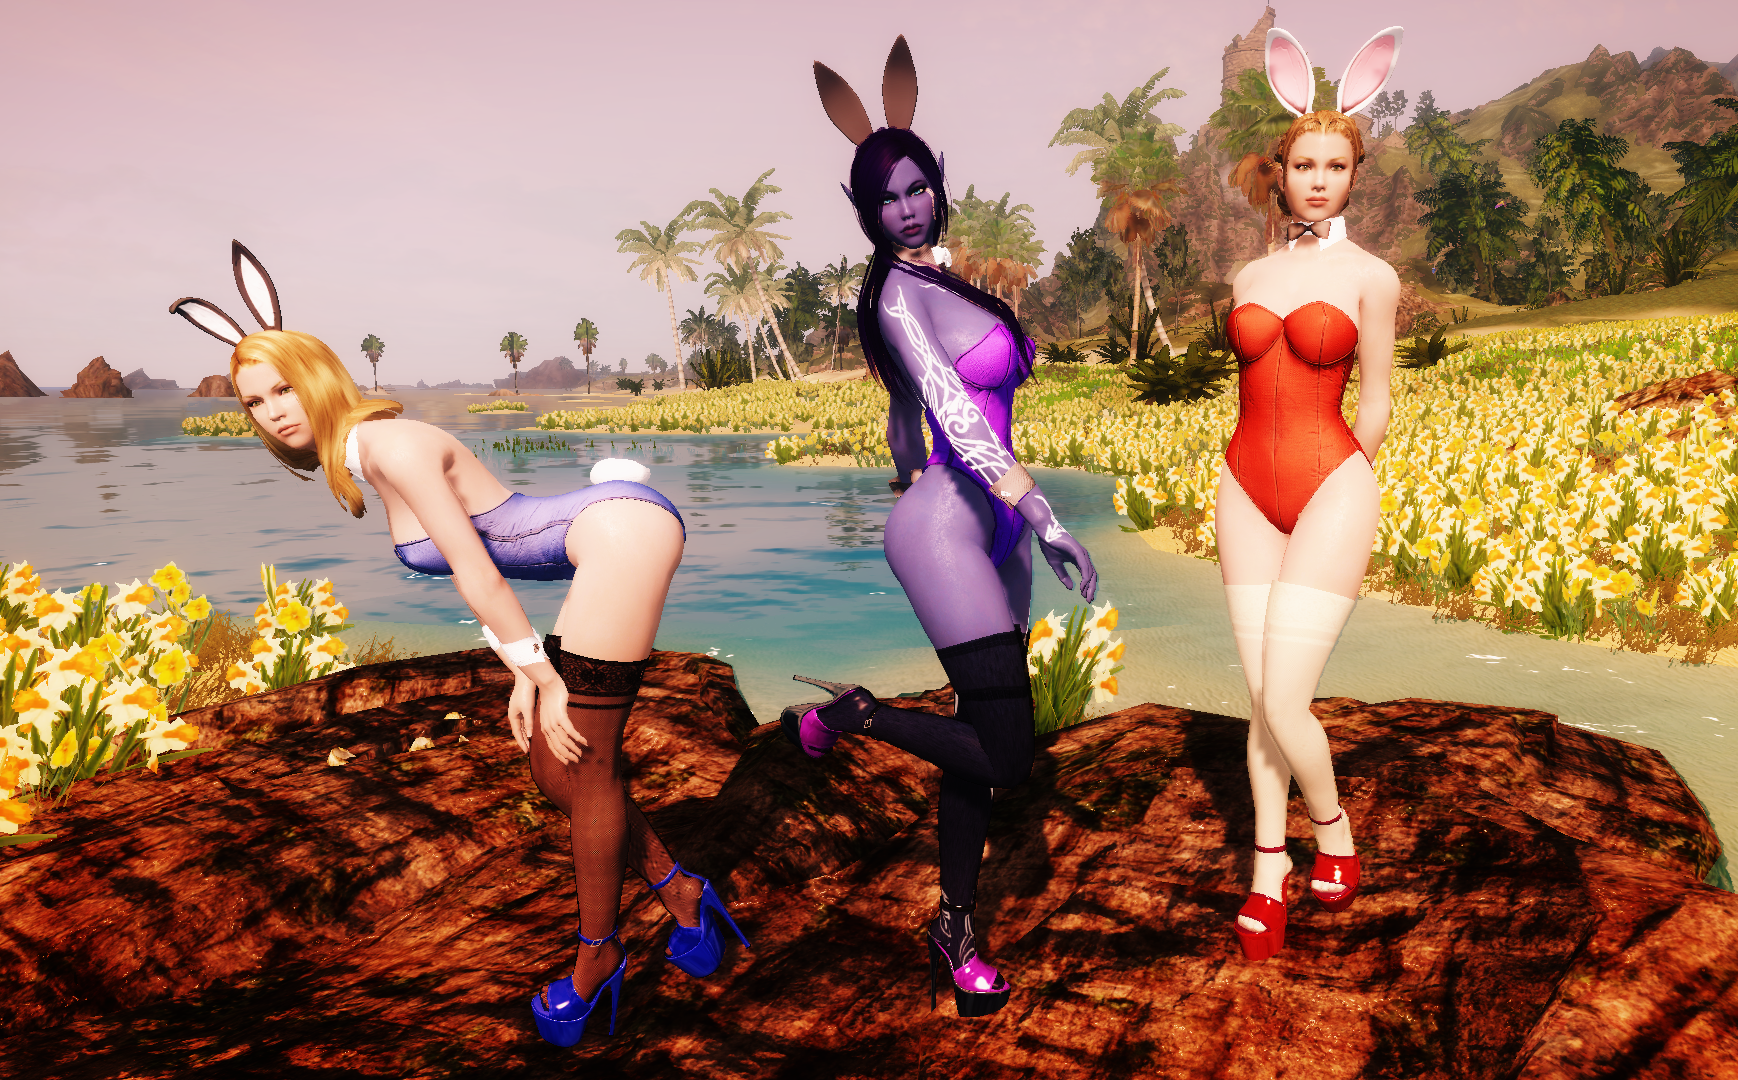 Nadriel's Bunny Girl outfit for CBBE and UUNP HDT and non-HDT Rus